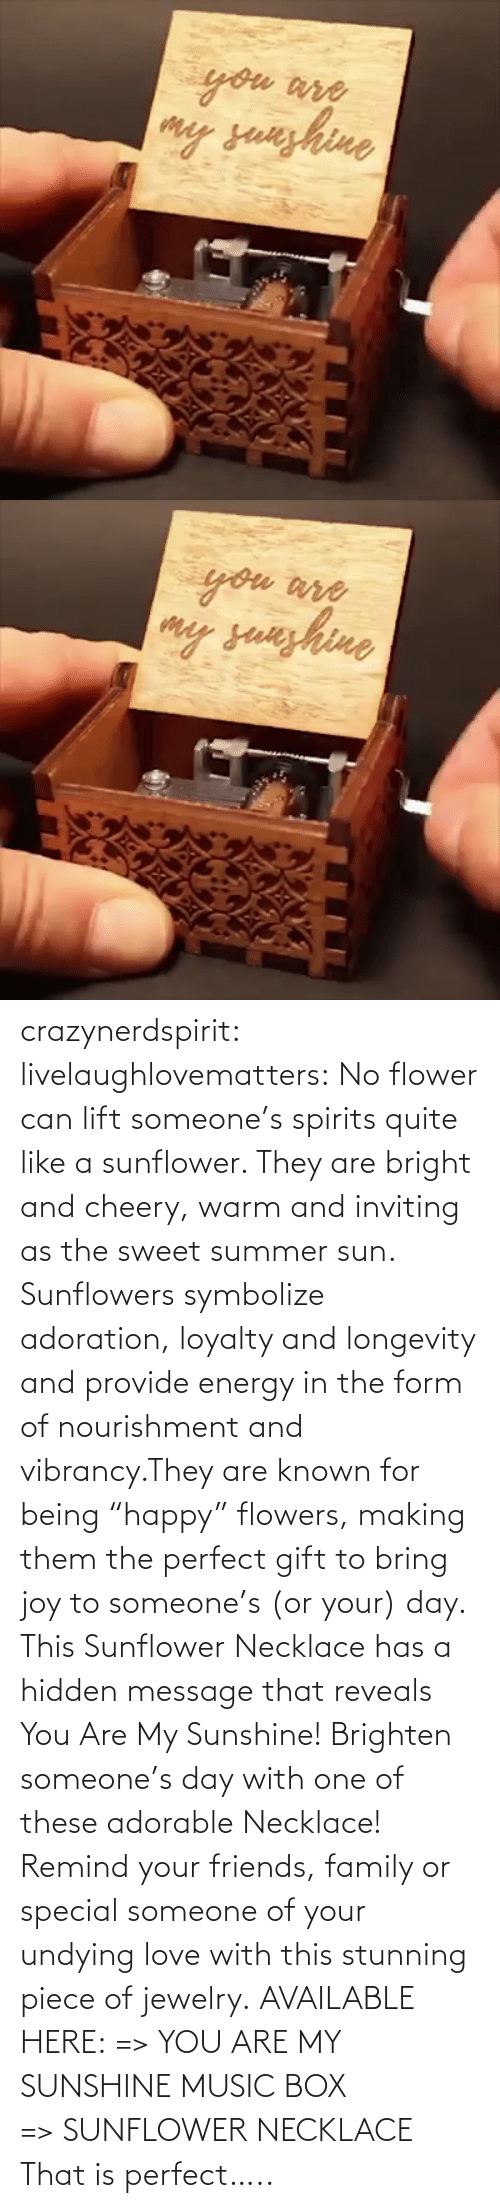 "Hidden Message: crazynerdspirit: livelaughlovematters:   No flower can lift someone's spirits quite like a sunflower. They are bright and cheery, warm and inviting as the sweet summer sun. Sunflowers symbolize adoration, loyalty and longevity and provide energy in the form of nourishment and vibrancy.They are known for being ""happy"" flowers, making them the perfect gift to bring joy to someone's (or your) day. This Sunflower Necklace has a hidden message that reveals You Are My Sunshine! Brighten someone's day with one of these adorable Necklace! Remind your friends, family or special someone of your undying love with this stunning piece of jewelry. AVAILABLE HERE: => YOU ARE MY SUNSHINE MUSIC BOX => SUNFLOWER NECKLACE    That is perfect….."